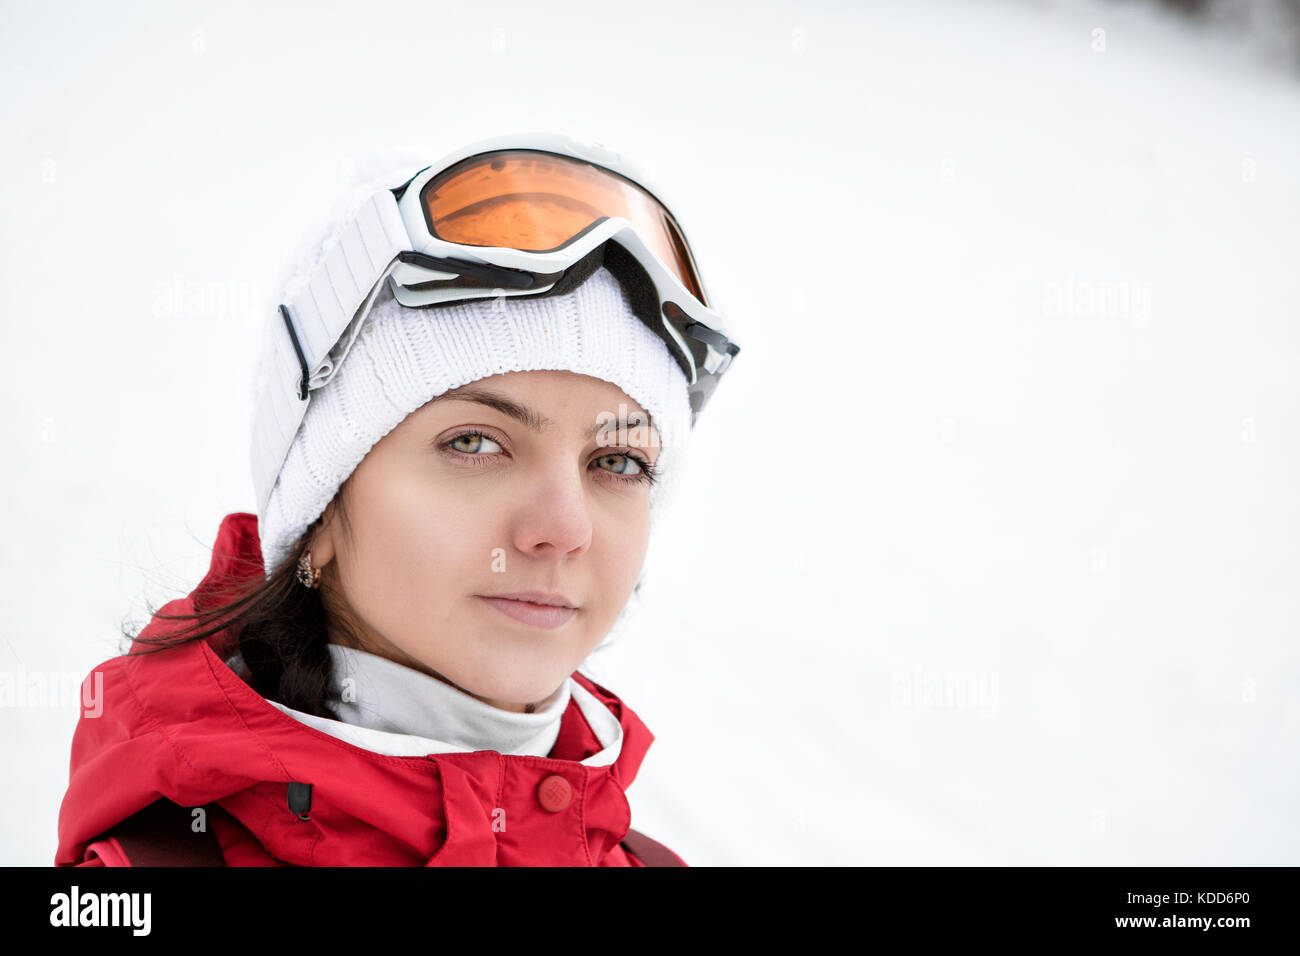 Portrait of a skier woman in ski goggles  - Stock Image